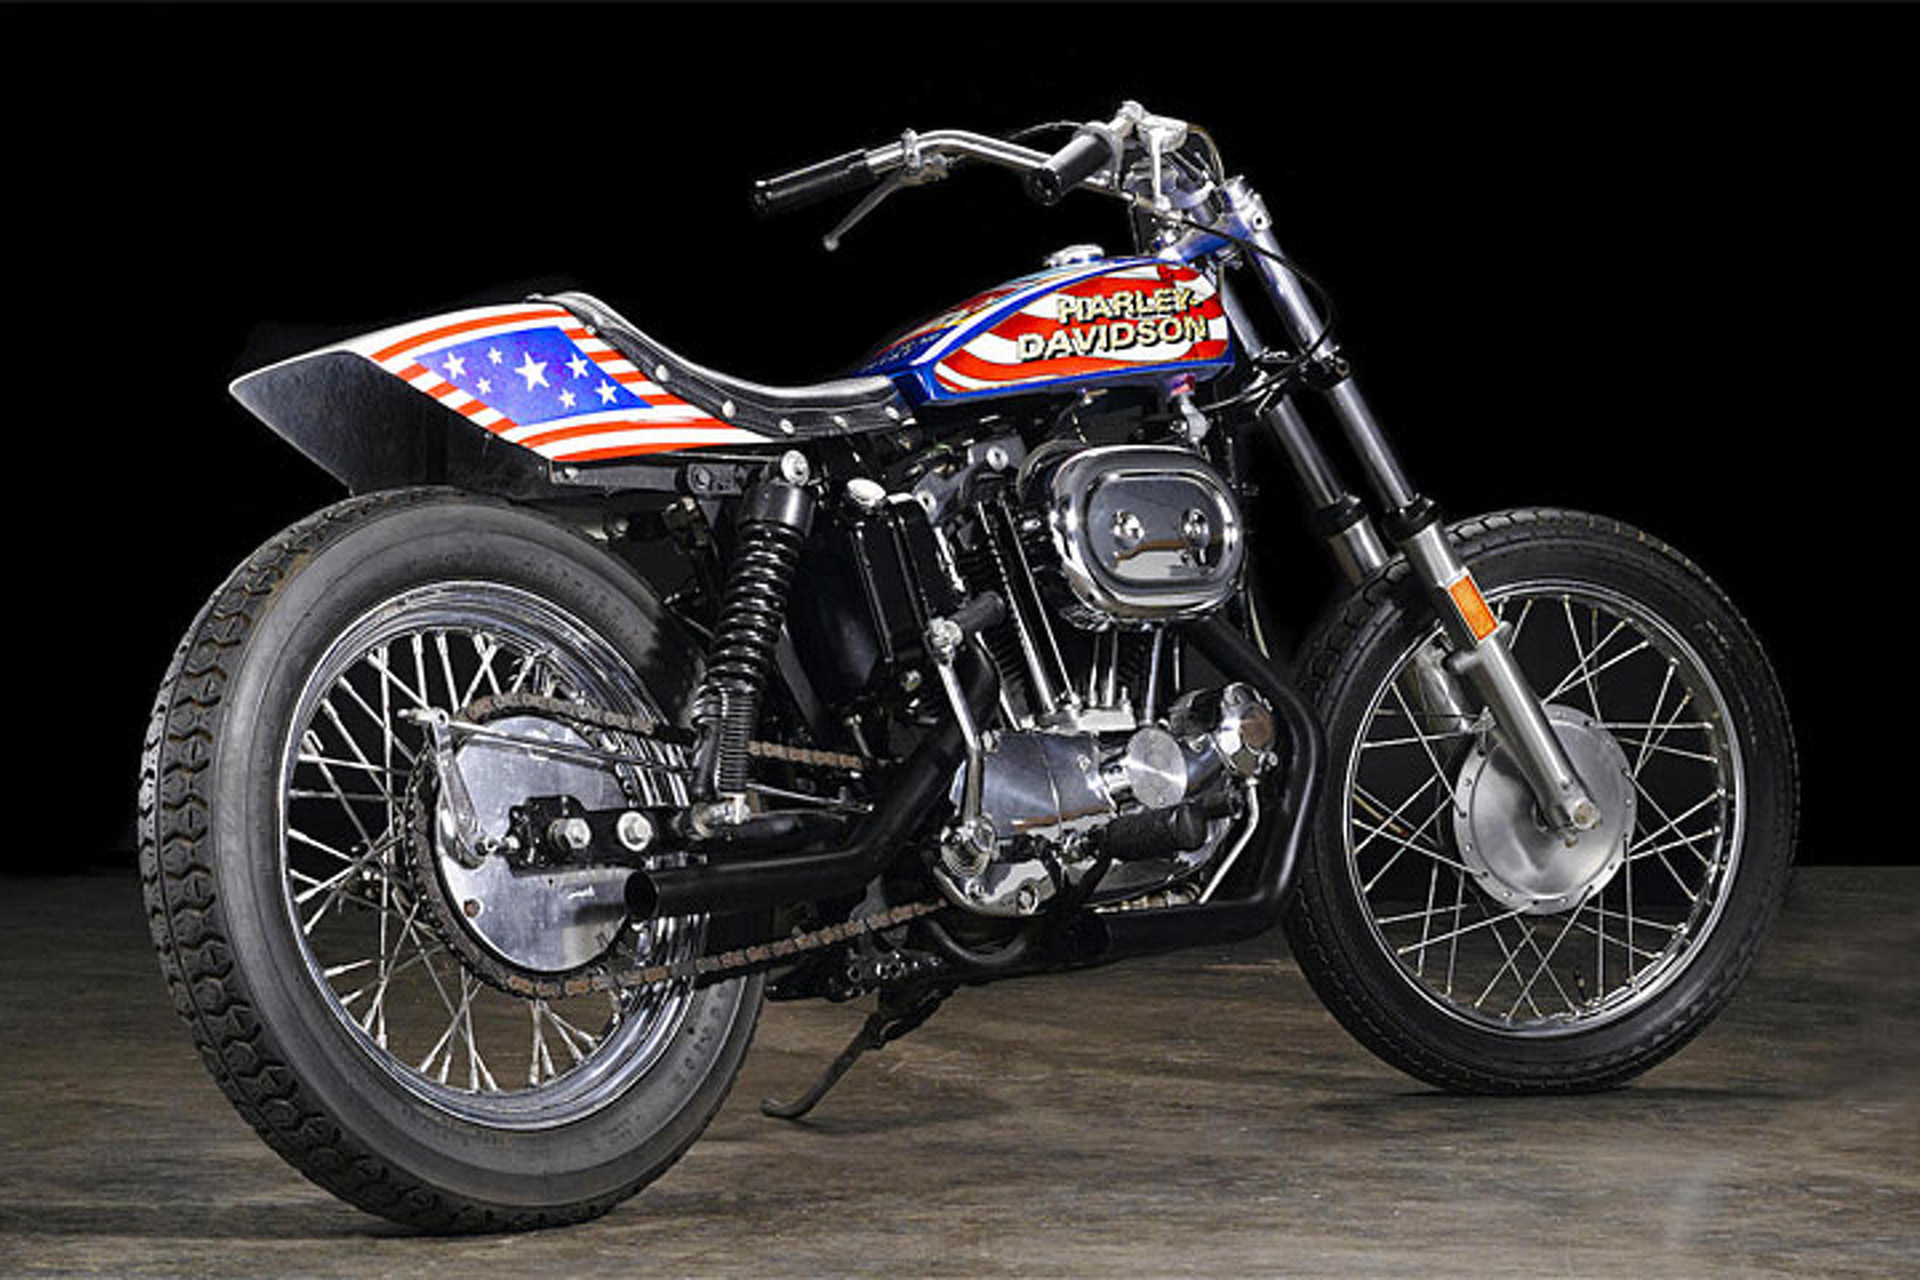 Famous Evel Knievel Bike At Auction: Evel Knievel Motorcycle Heading To Auction—Just Don't Jump It